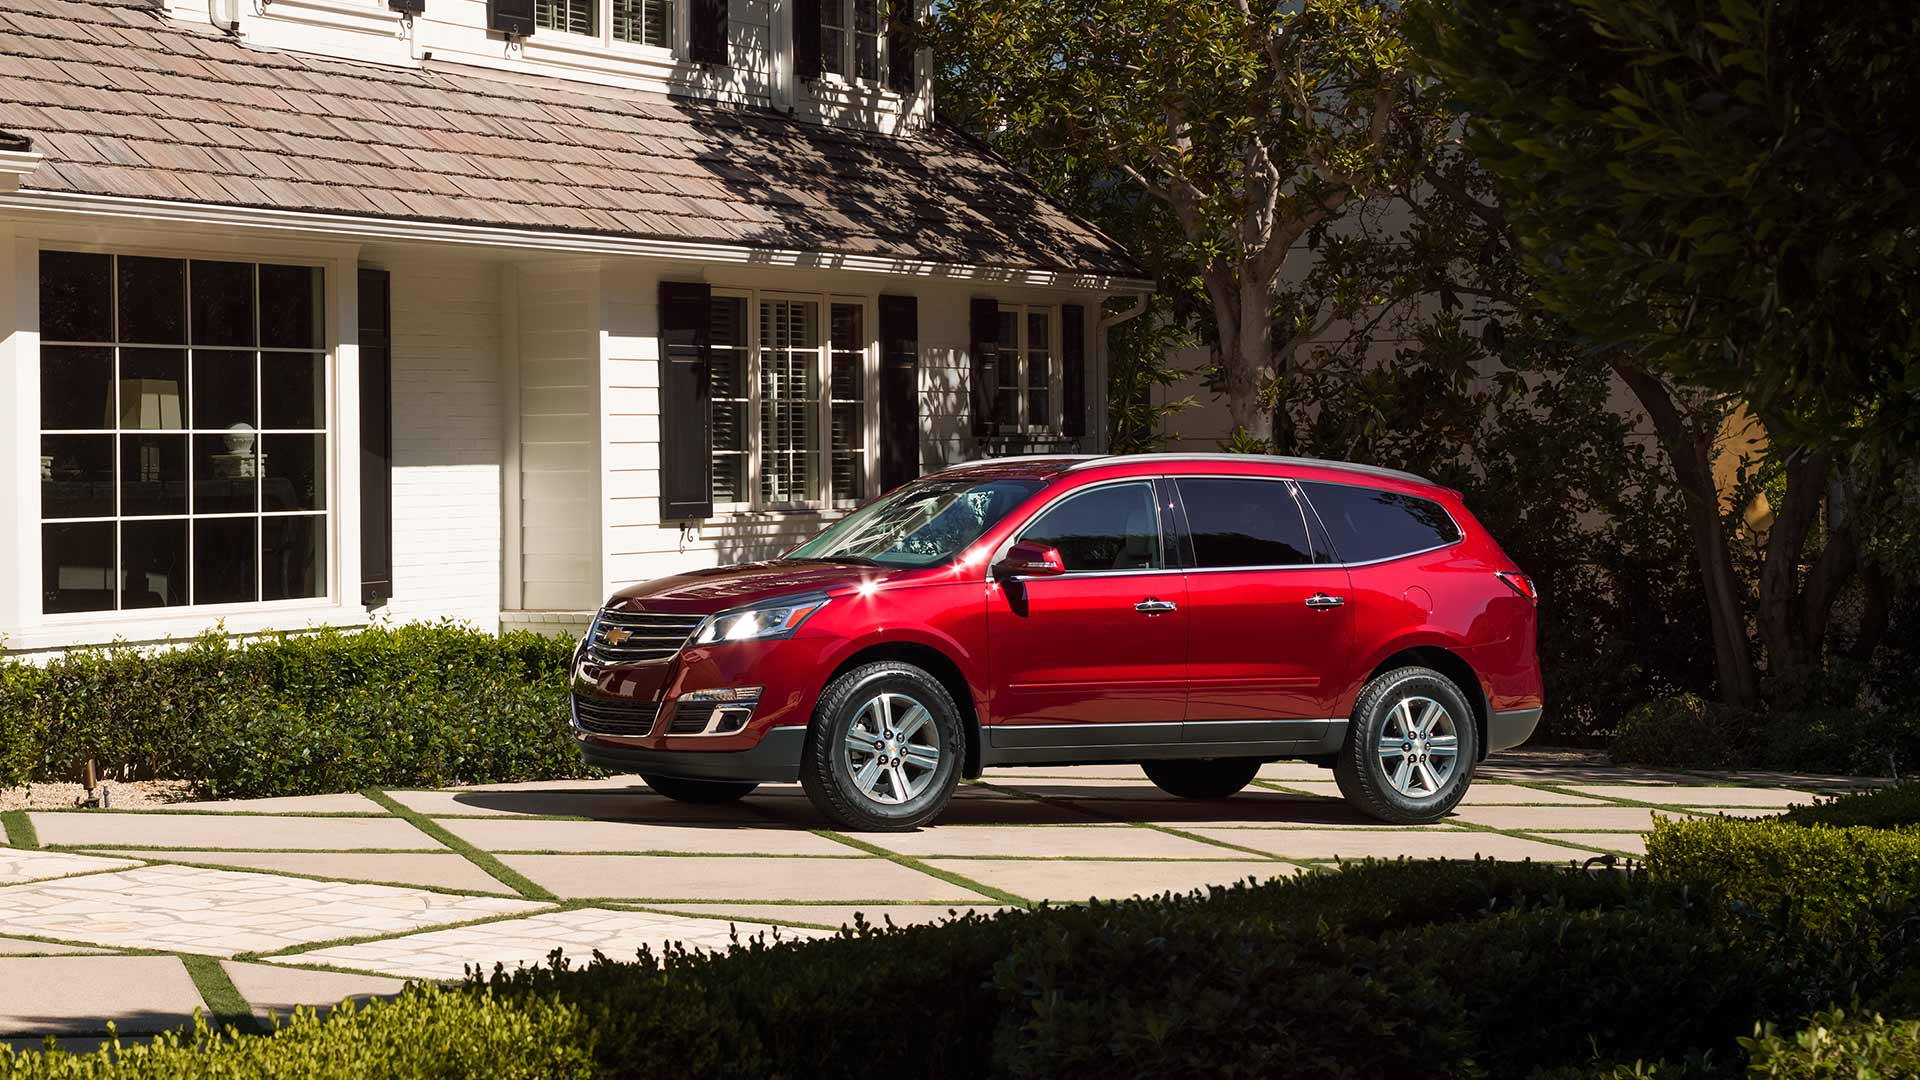 2017 Chevrolet Traverse Red Side Exterior